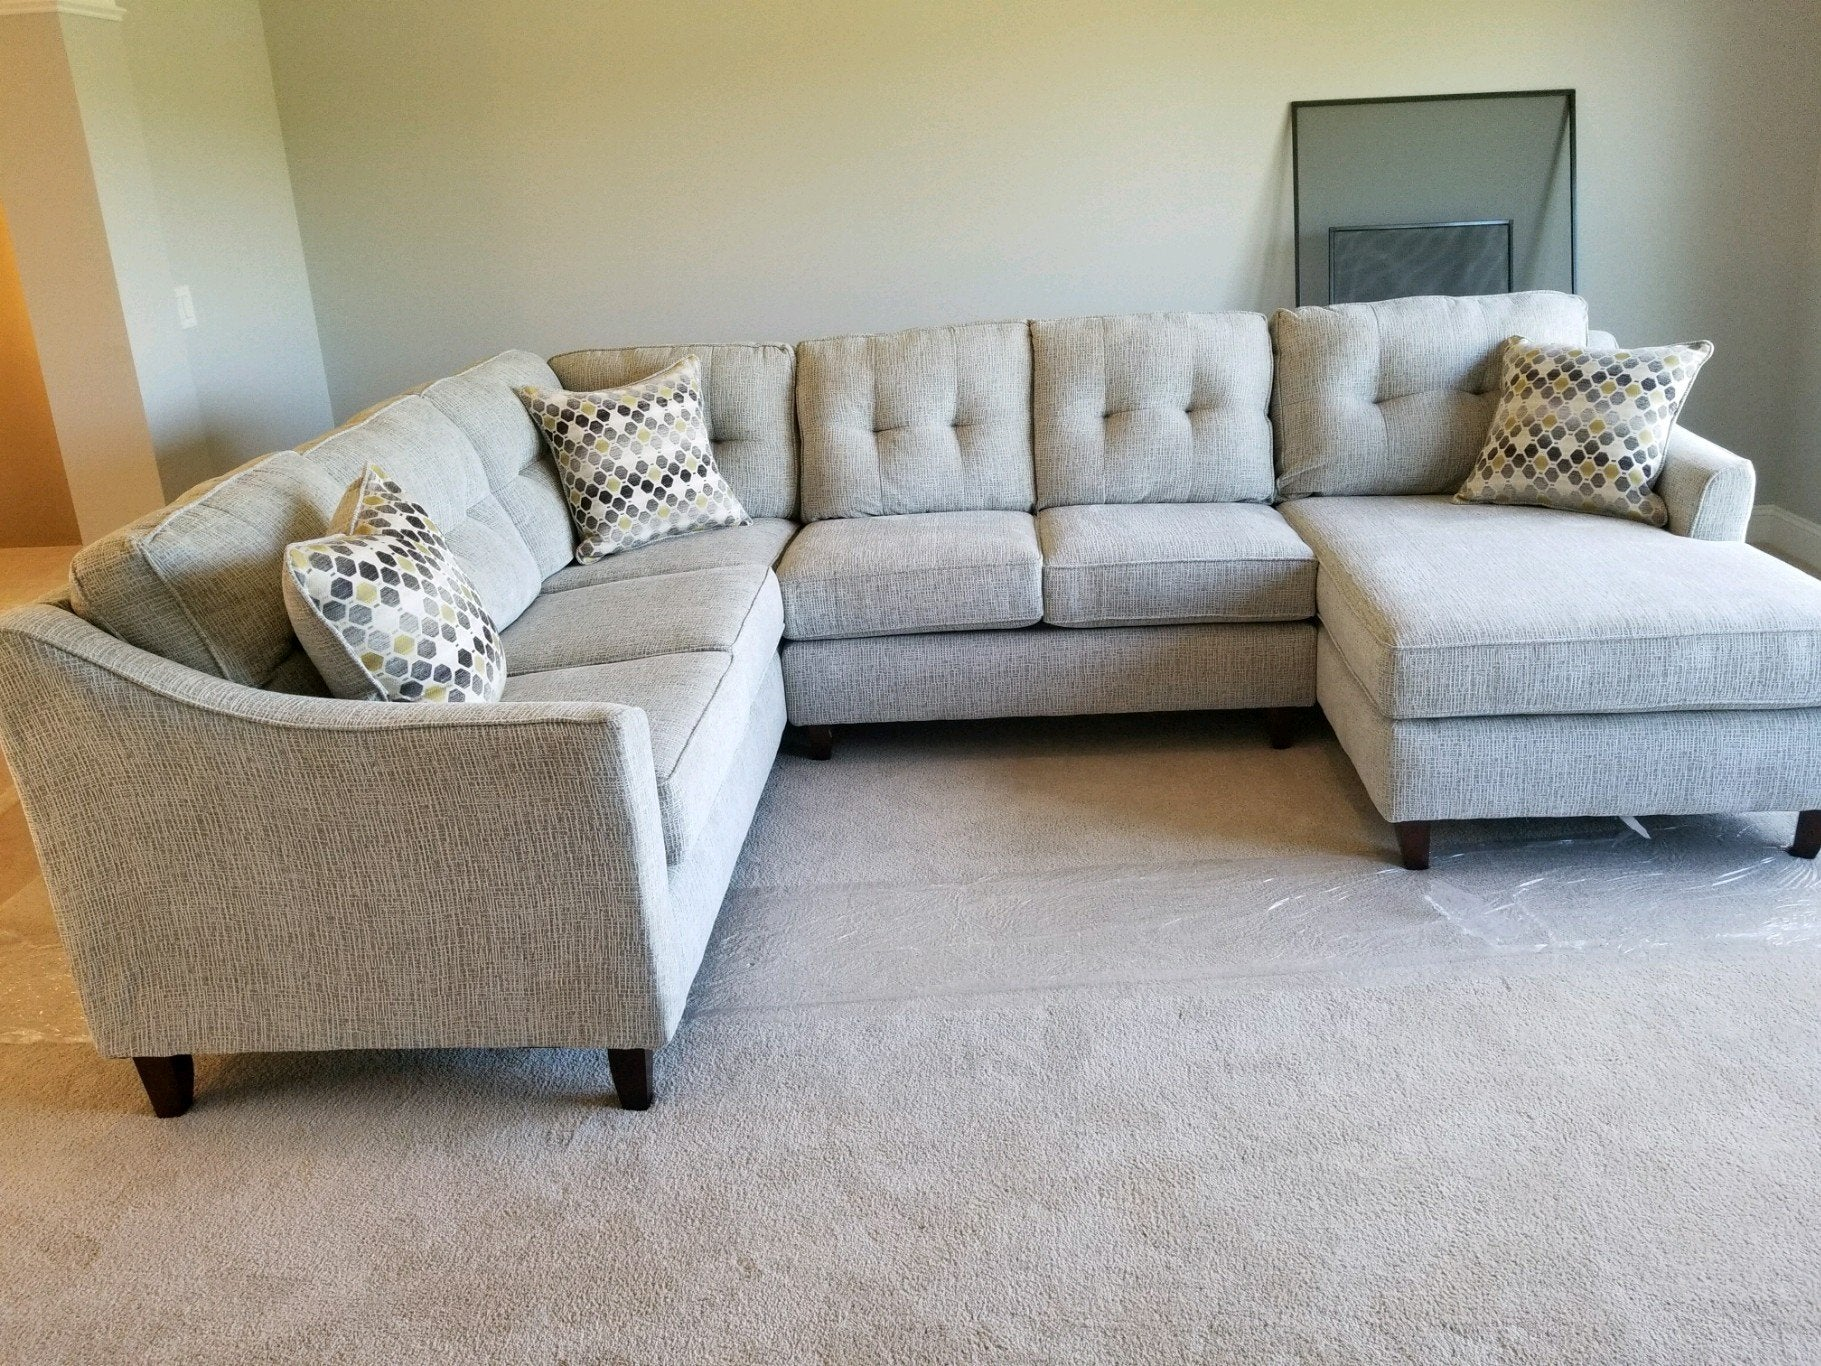 Sydney cream sectional sofa set